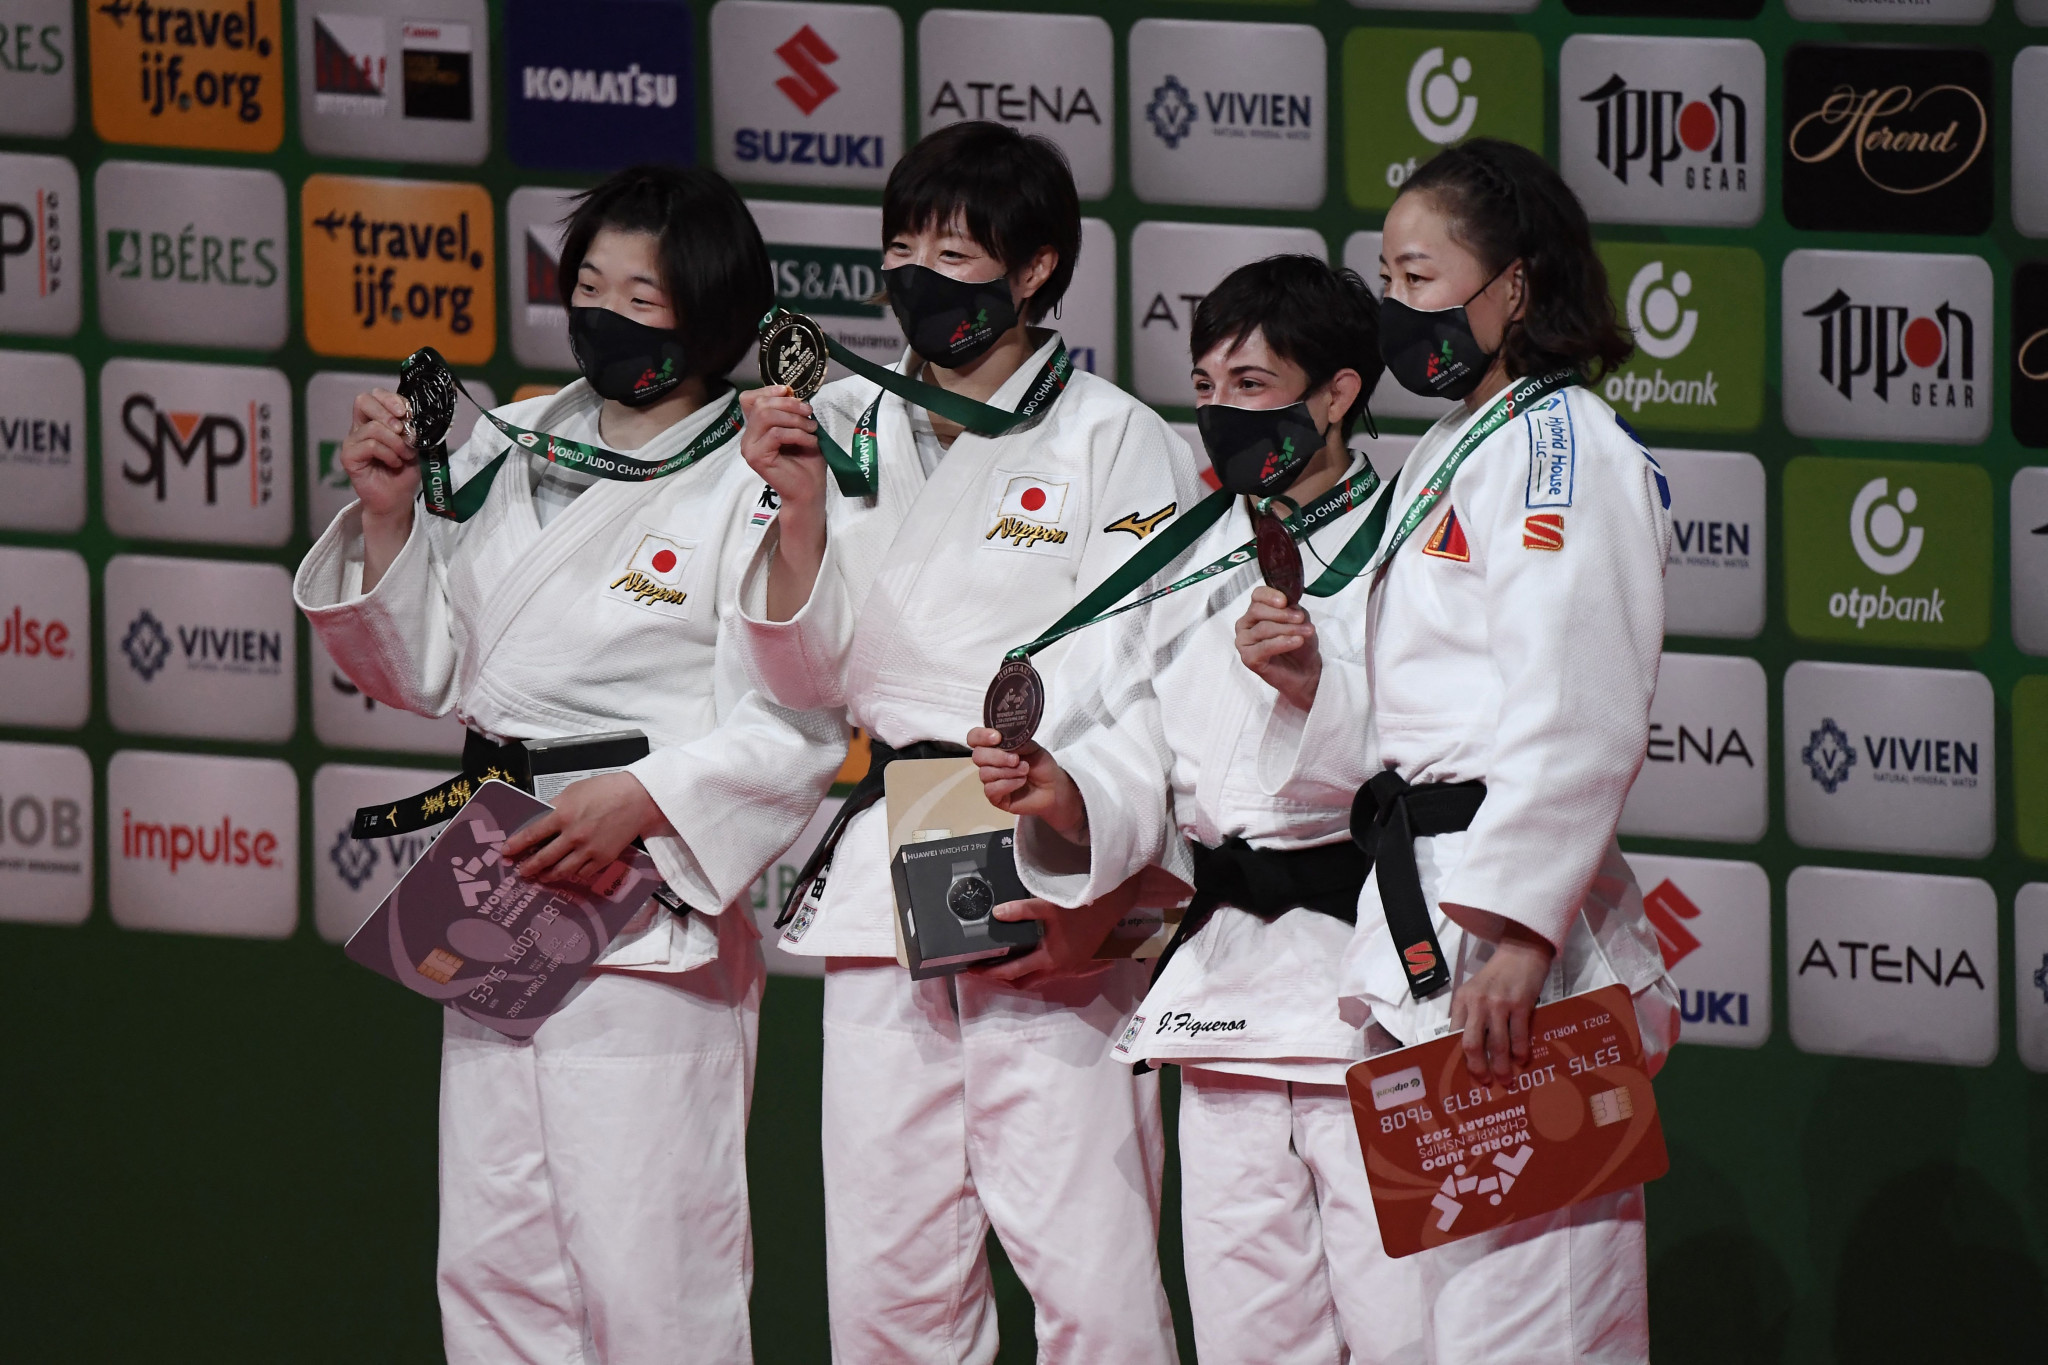 Tsunoda wins all-Japanese final to claim opening-day gold at World Judo Championships